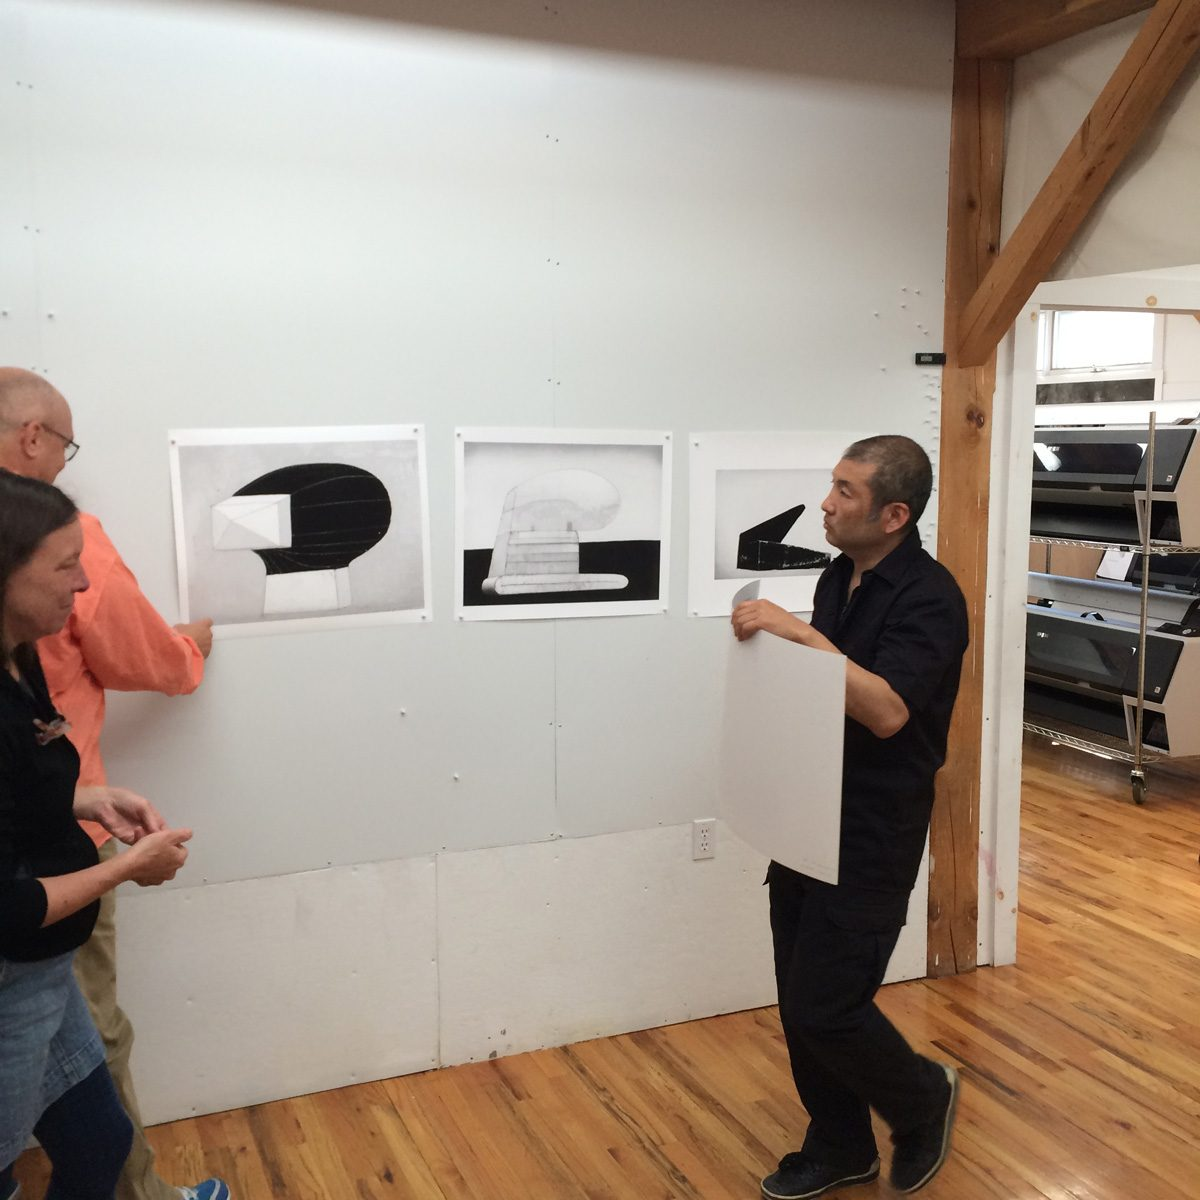 Hiroyuki Hamada putting up some his prints after the Vermont workshop. Horoyuki came to see if Piezography could work with his process and he ended up buying a system!